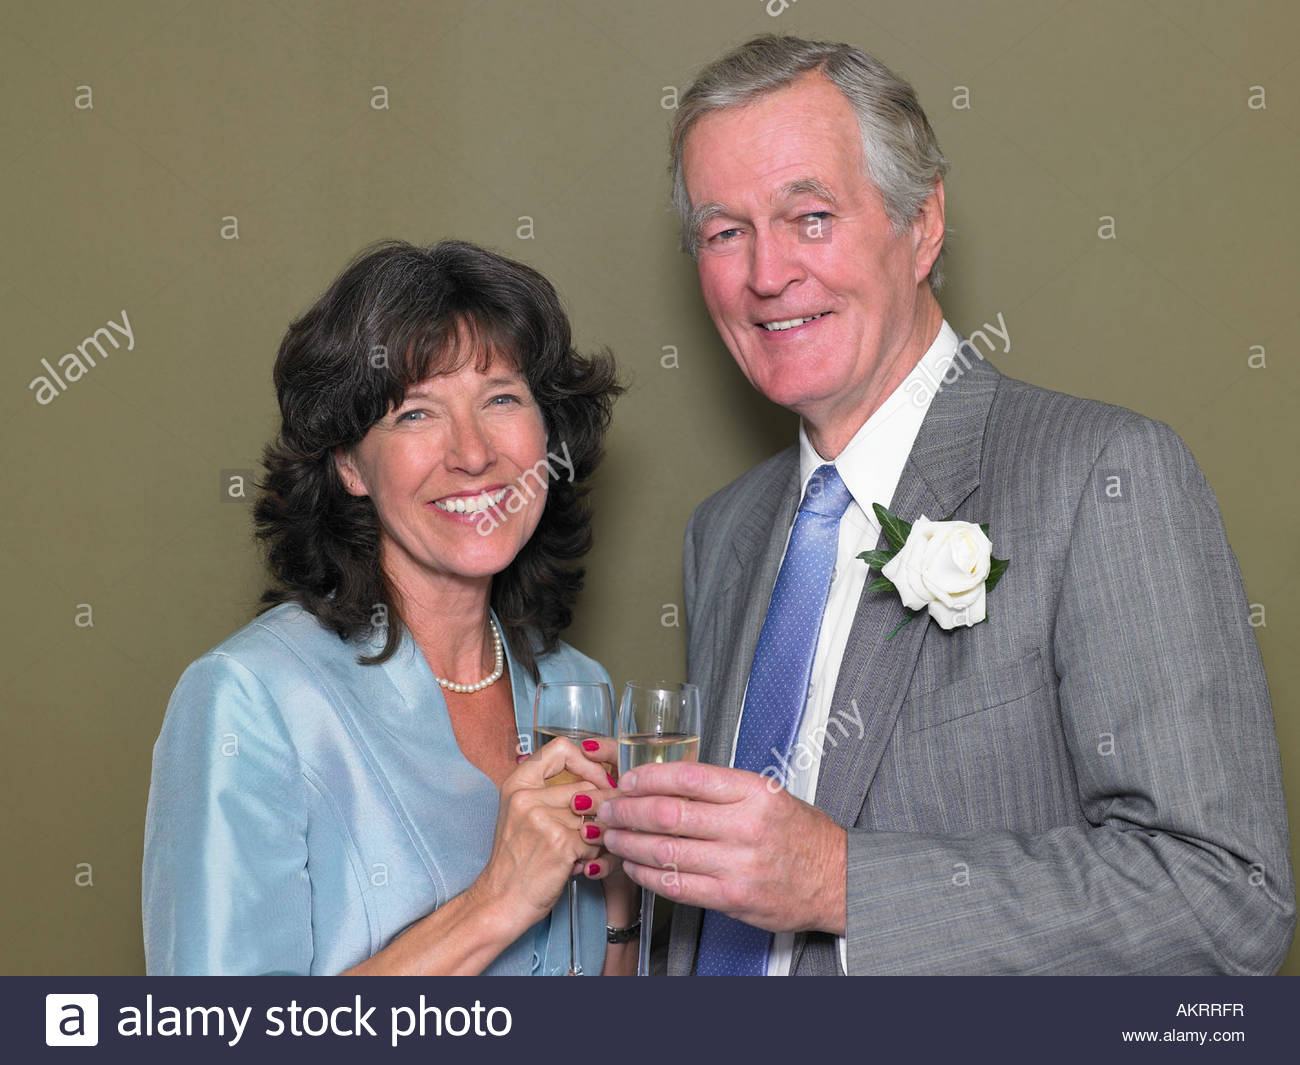 Portrait of a man and a woman - Stock Image